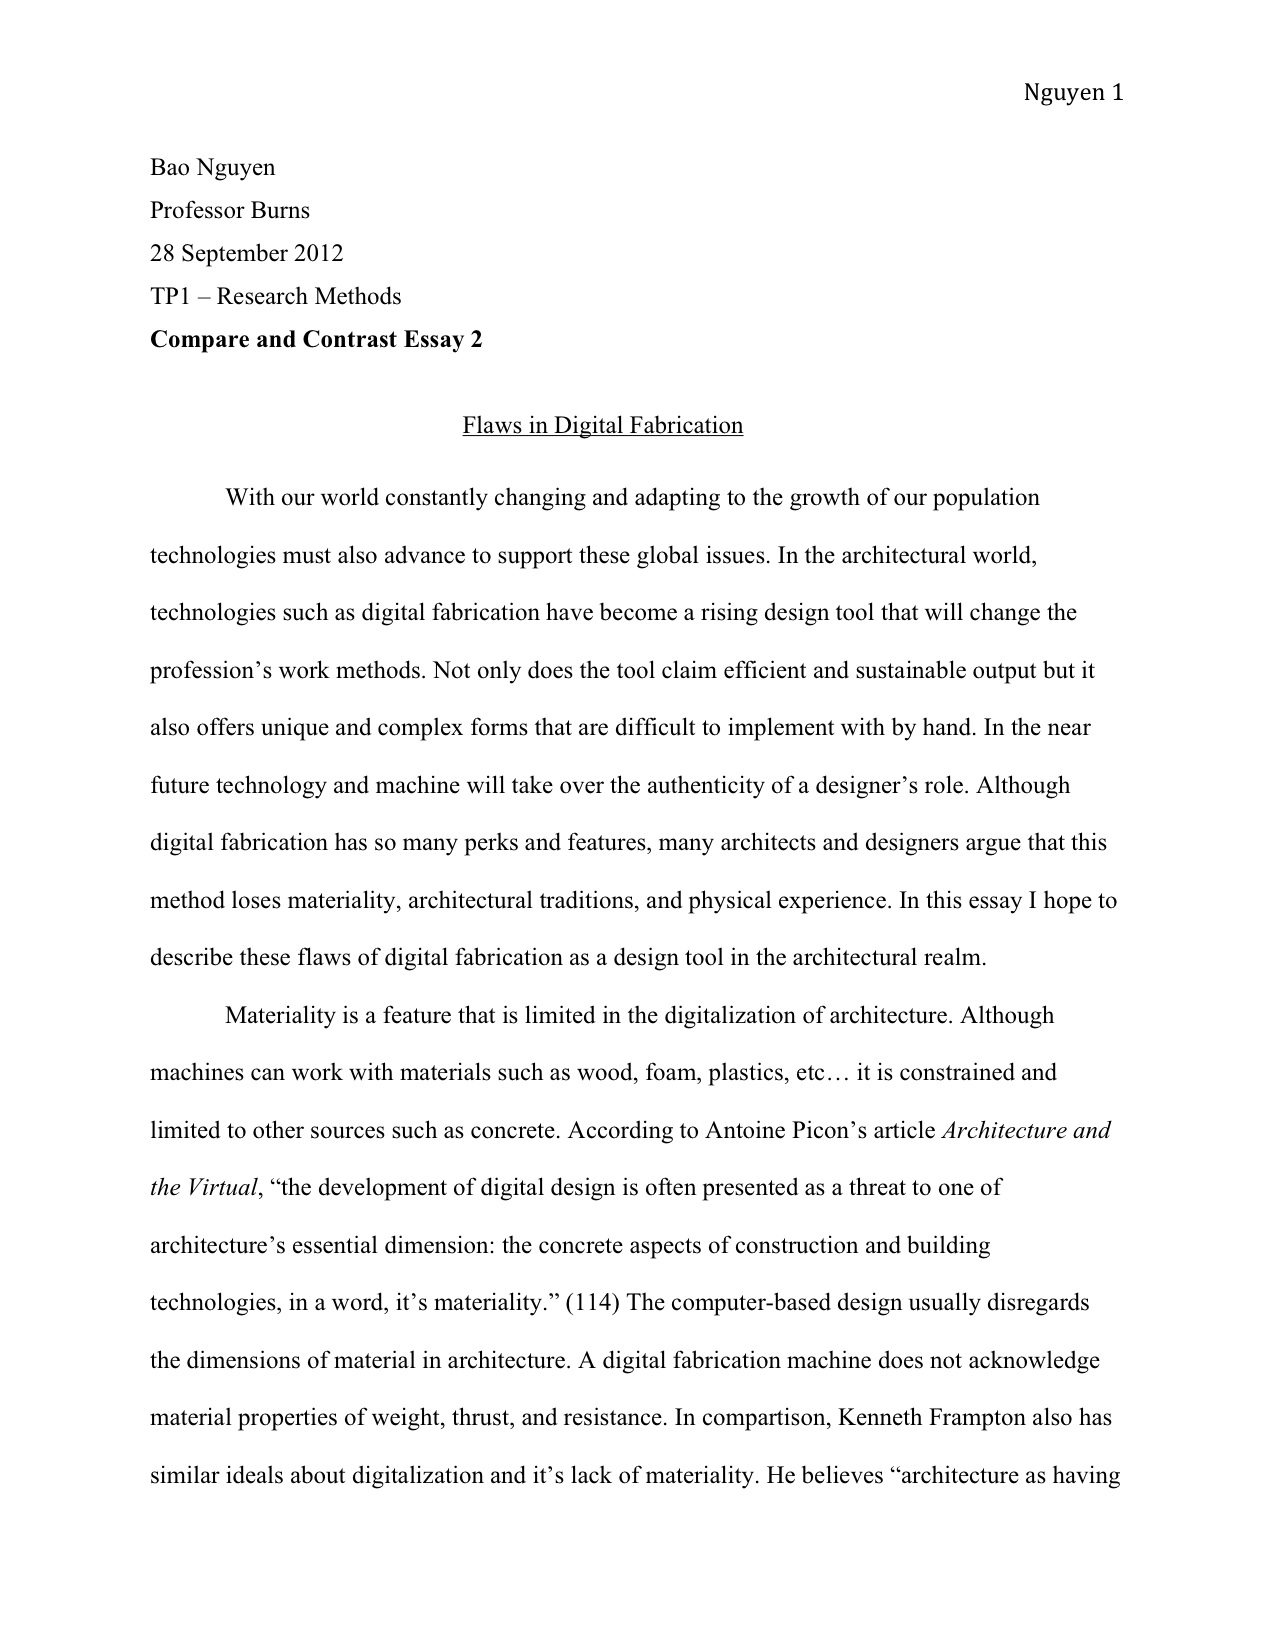 007 How Do You Write An Essay Example Tp1 3 Unbelievable A Good Outline To Introduction Paragraph Argumentative In Third Person Full